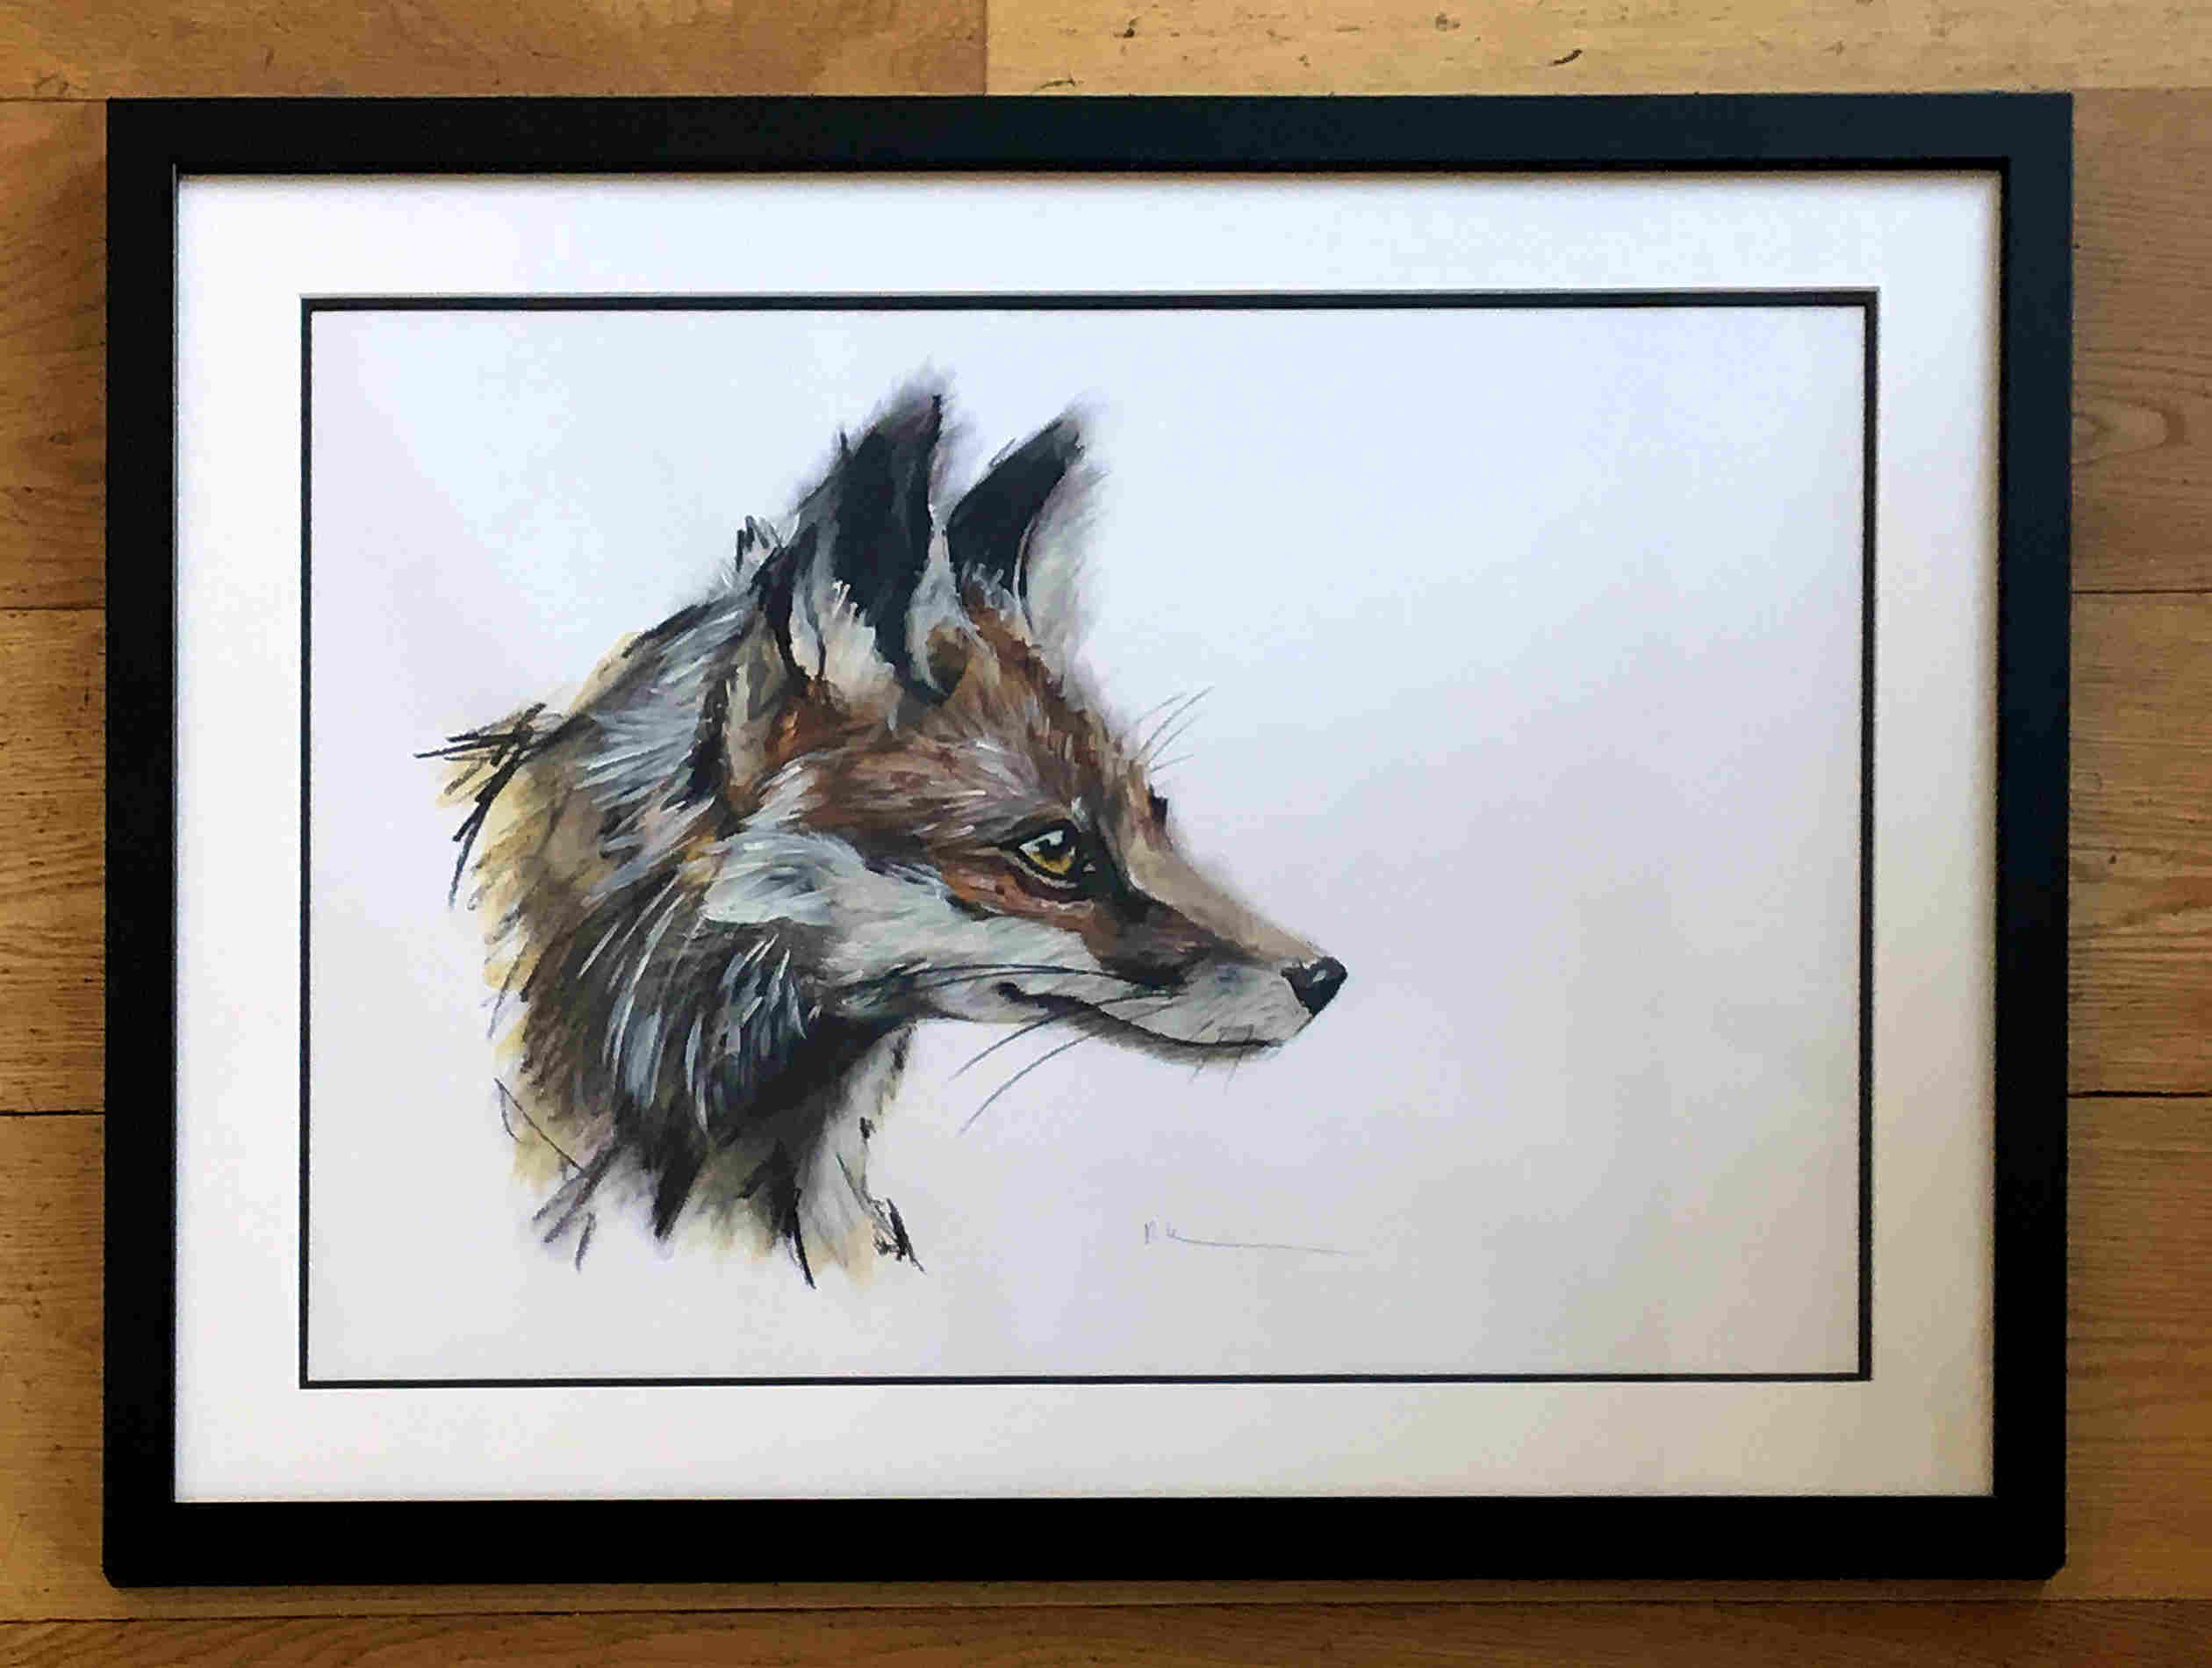 'Fox' by artist Rebecca Kelly